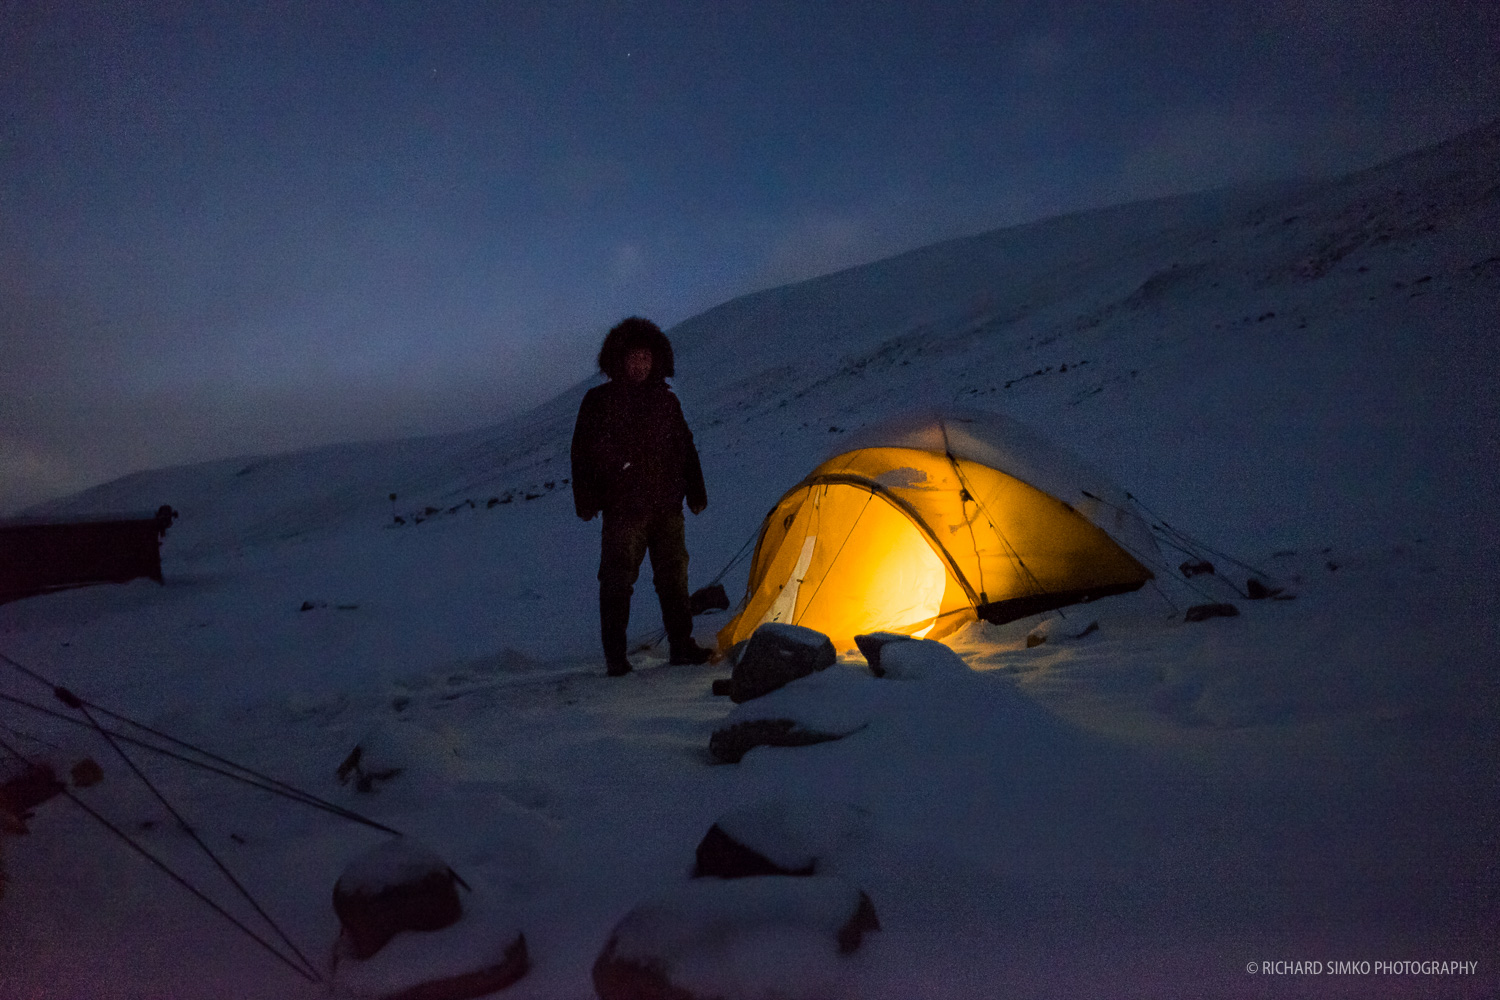 Freezing night at basecamp. It is almost pitch black only headlamp inside the tent is illuminating the immediate surroundings.